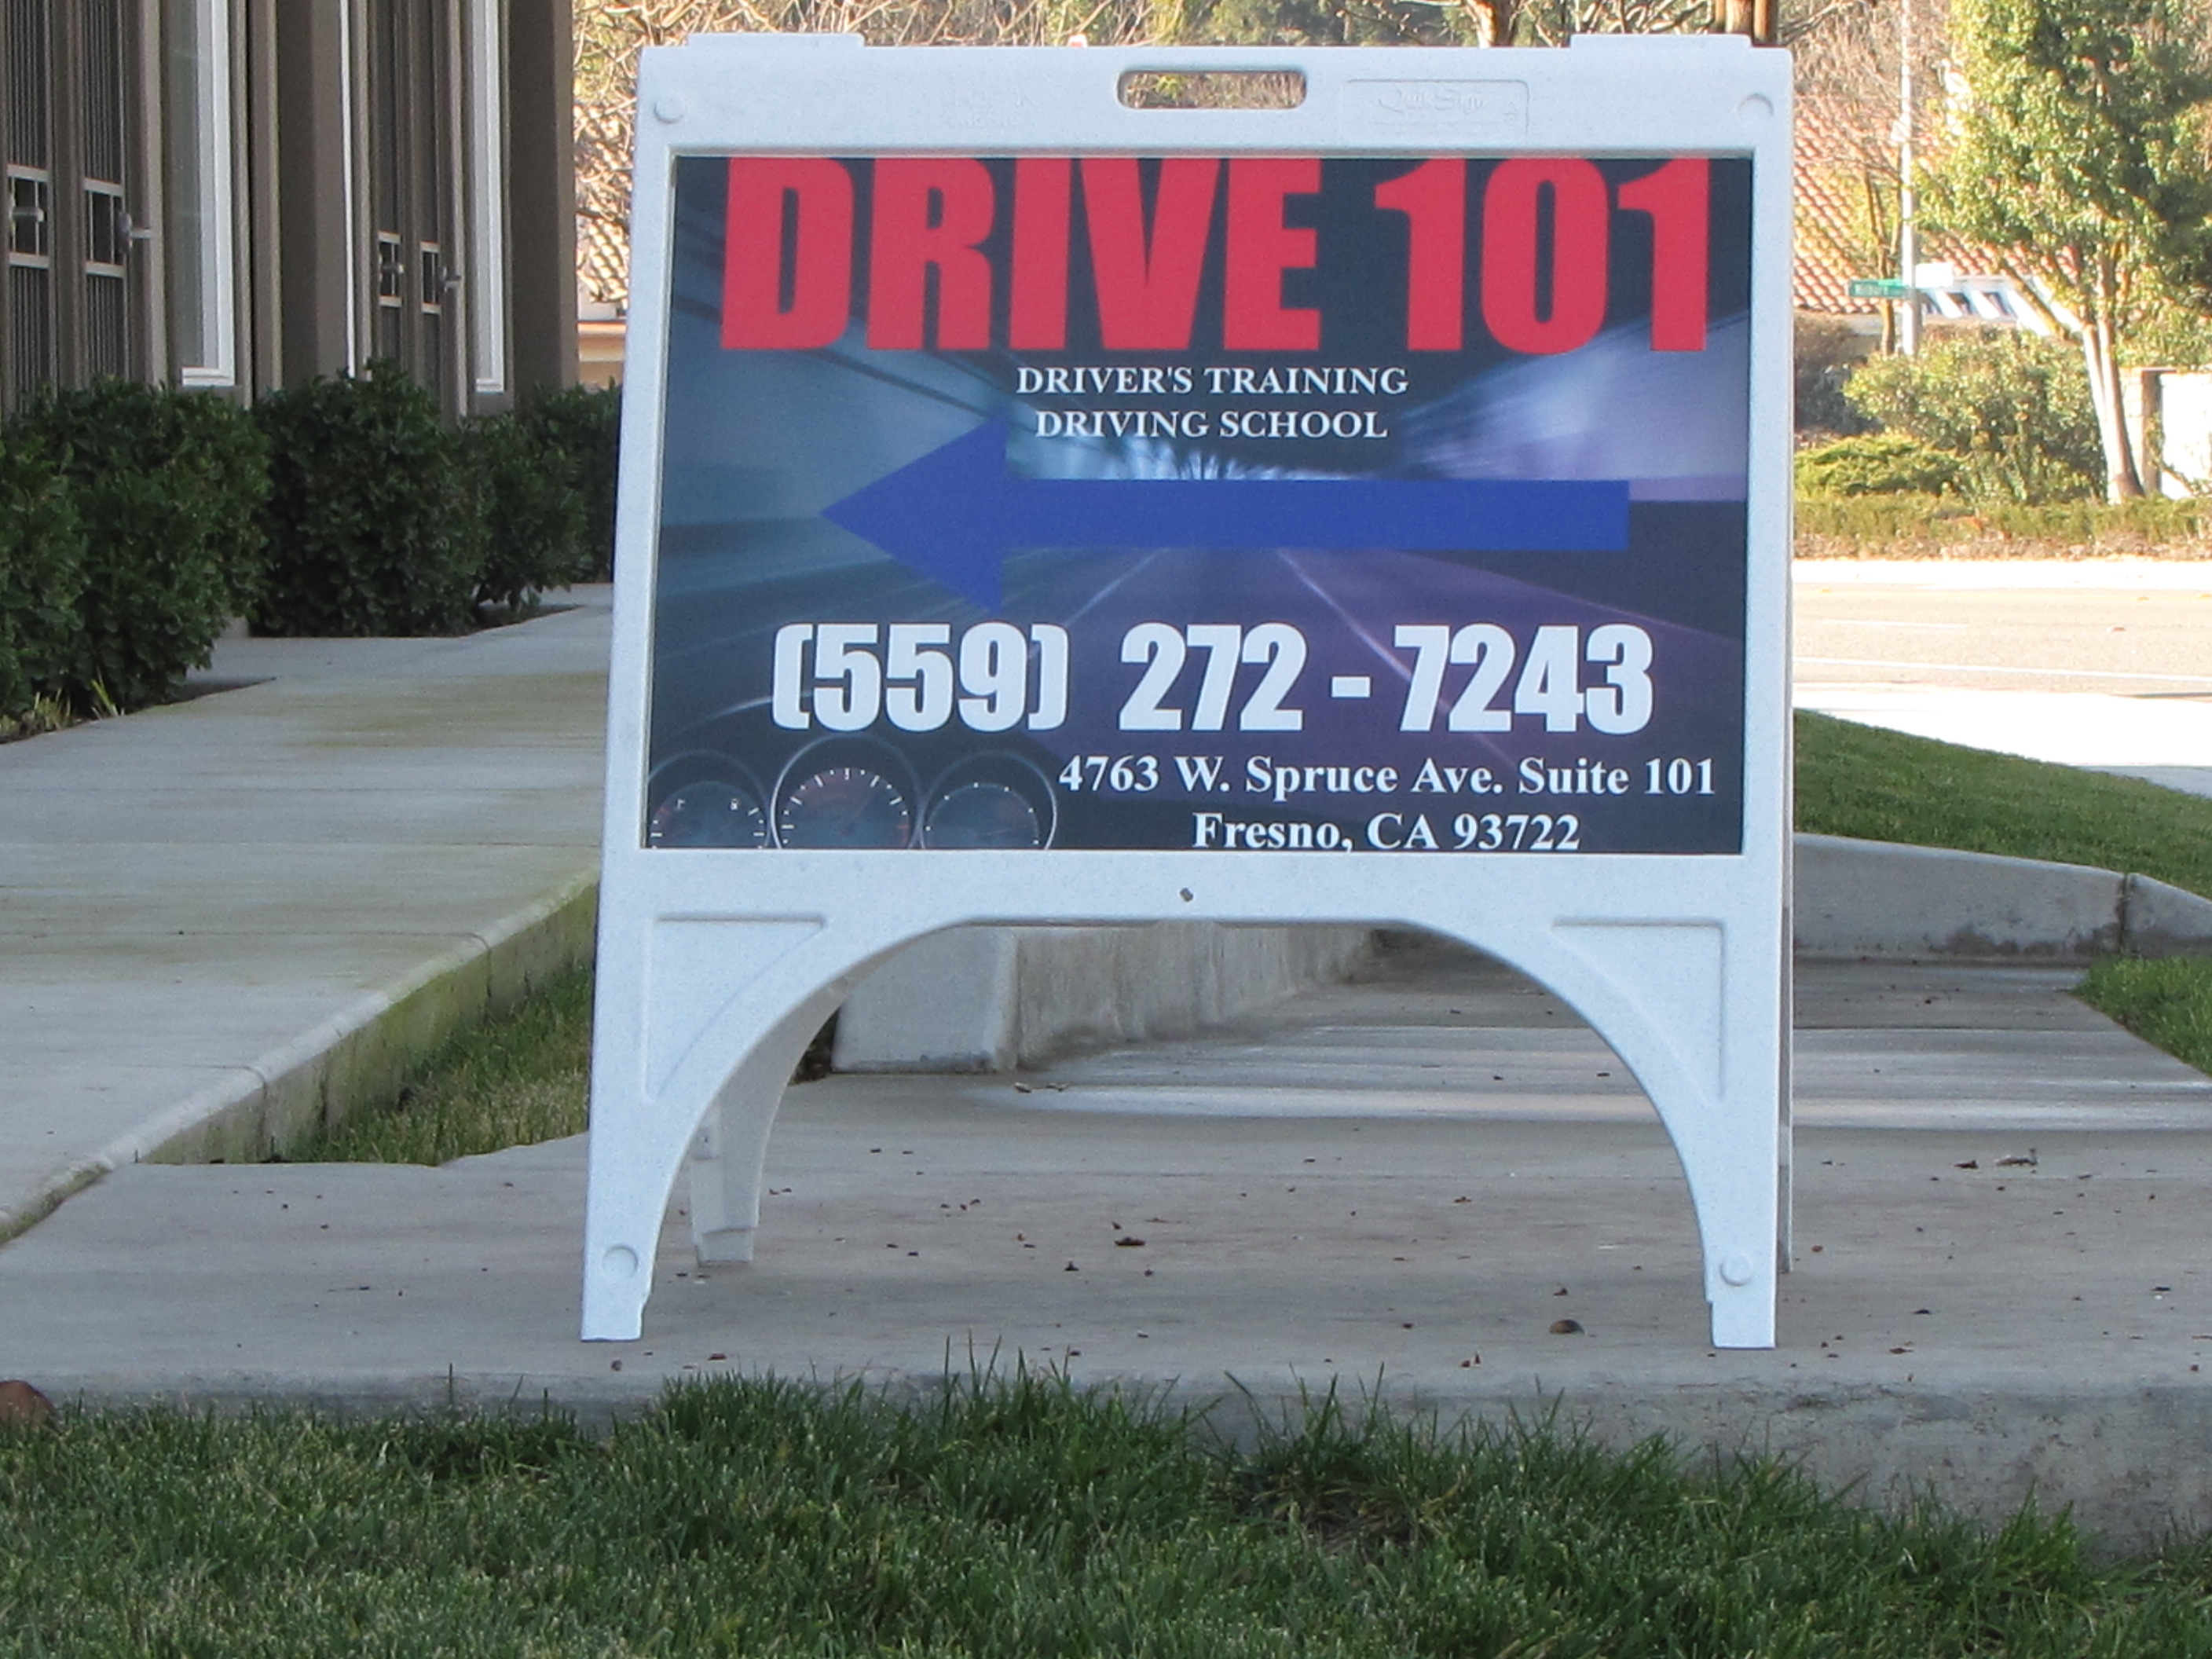 drive 101 driving school coupons near me in fresno 8coupons. Black Bedroom Furniture Sets. Home Design Ideas